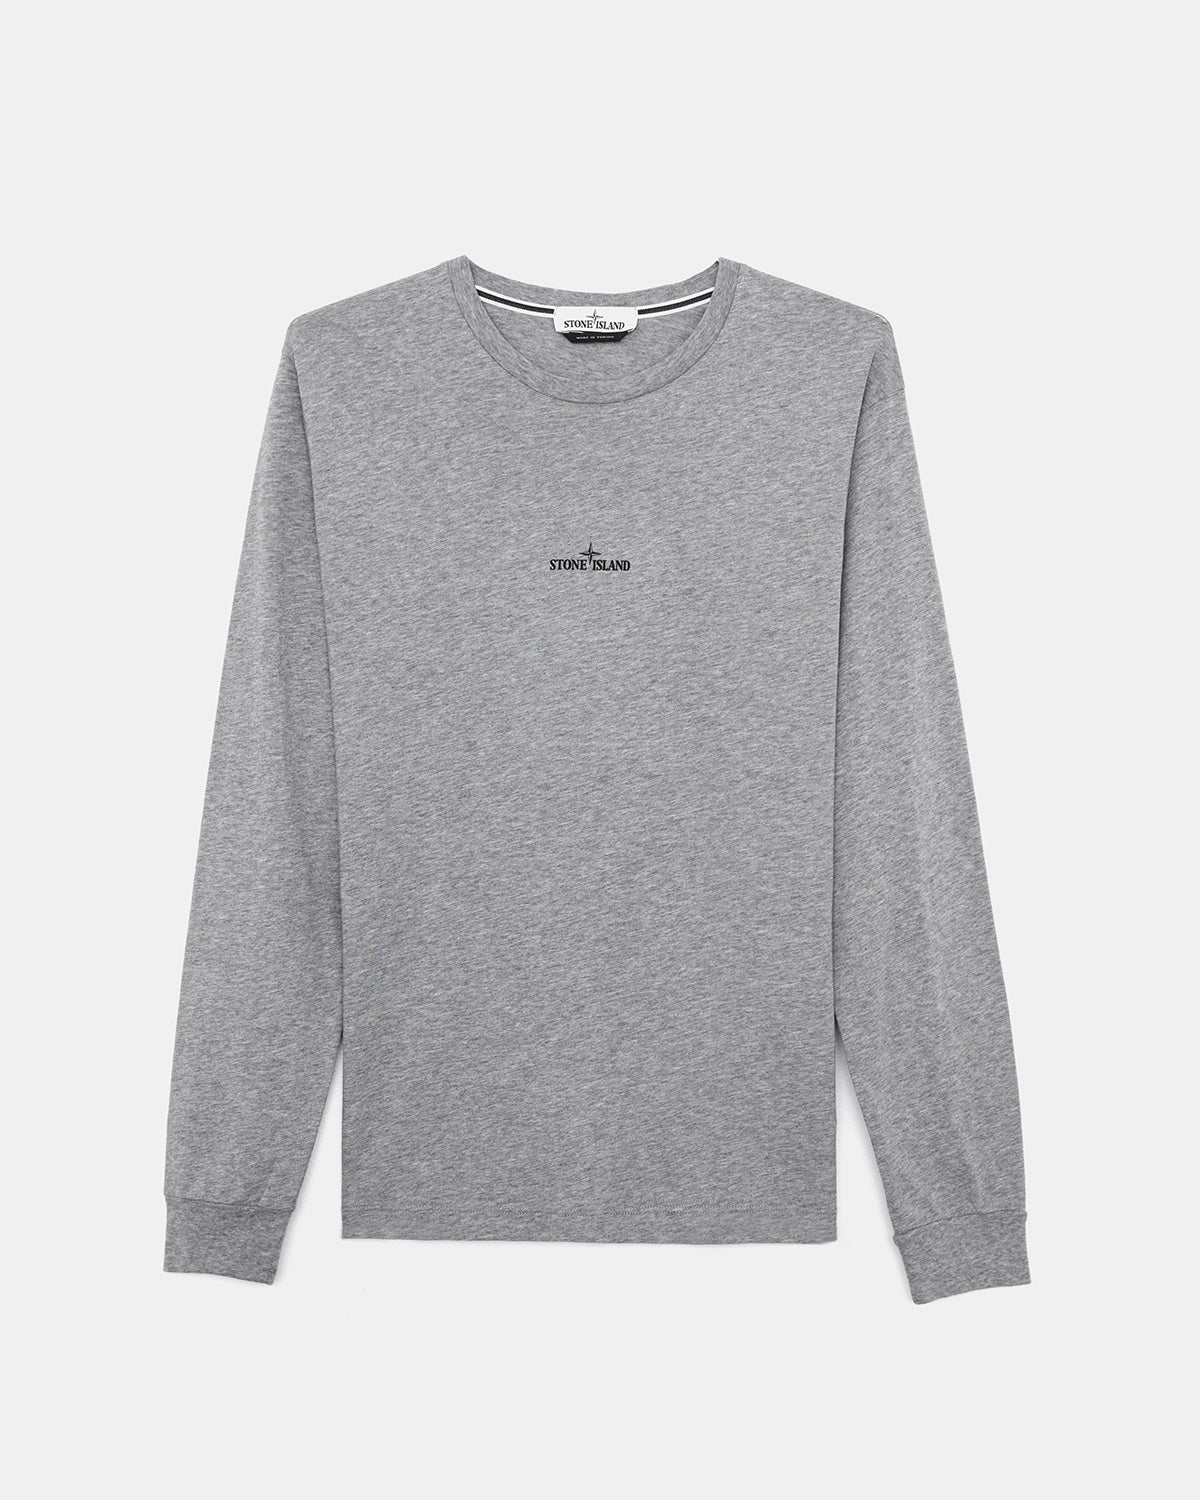 Stone Island - Long Sleeve Stoney Logo Tee (Dust)